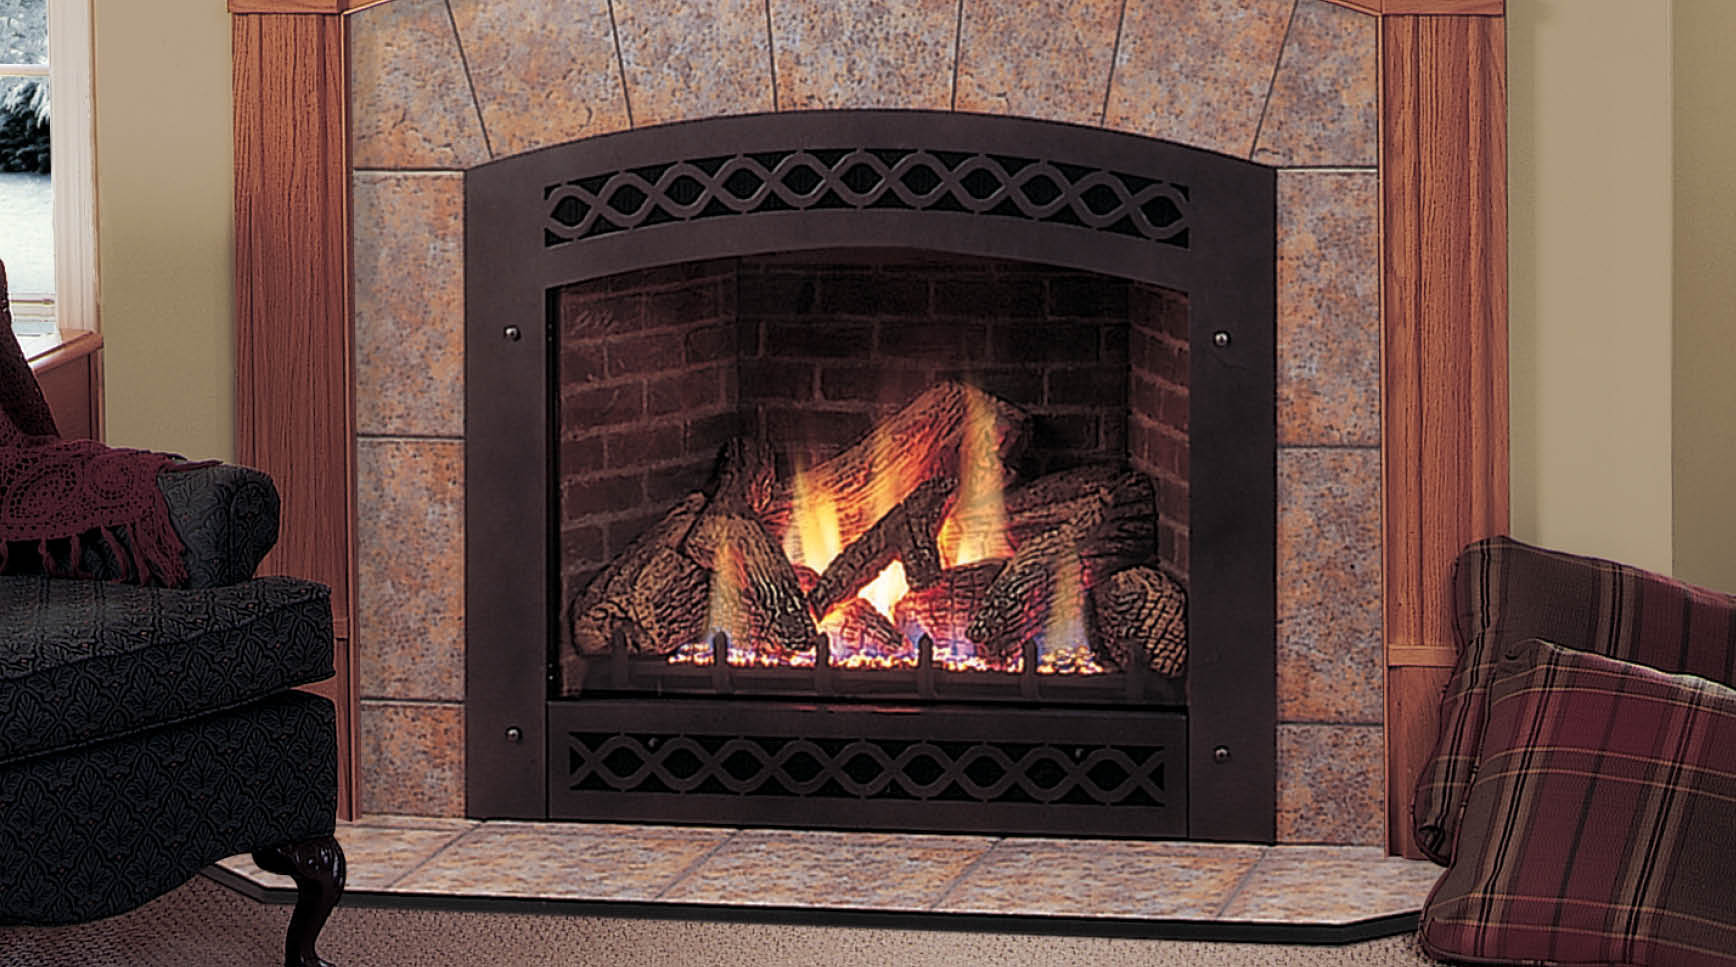 Best ideas about Direct Vent Gas Fireplace . Save or Pin Lexington Direct Vent Gas Fireplace Now.